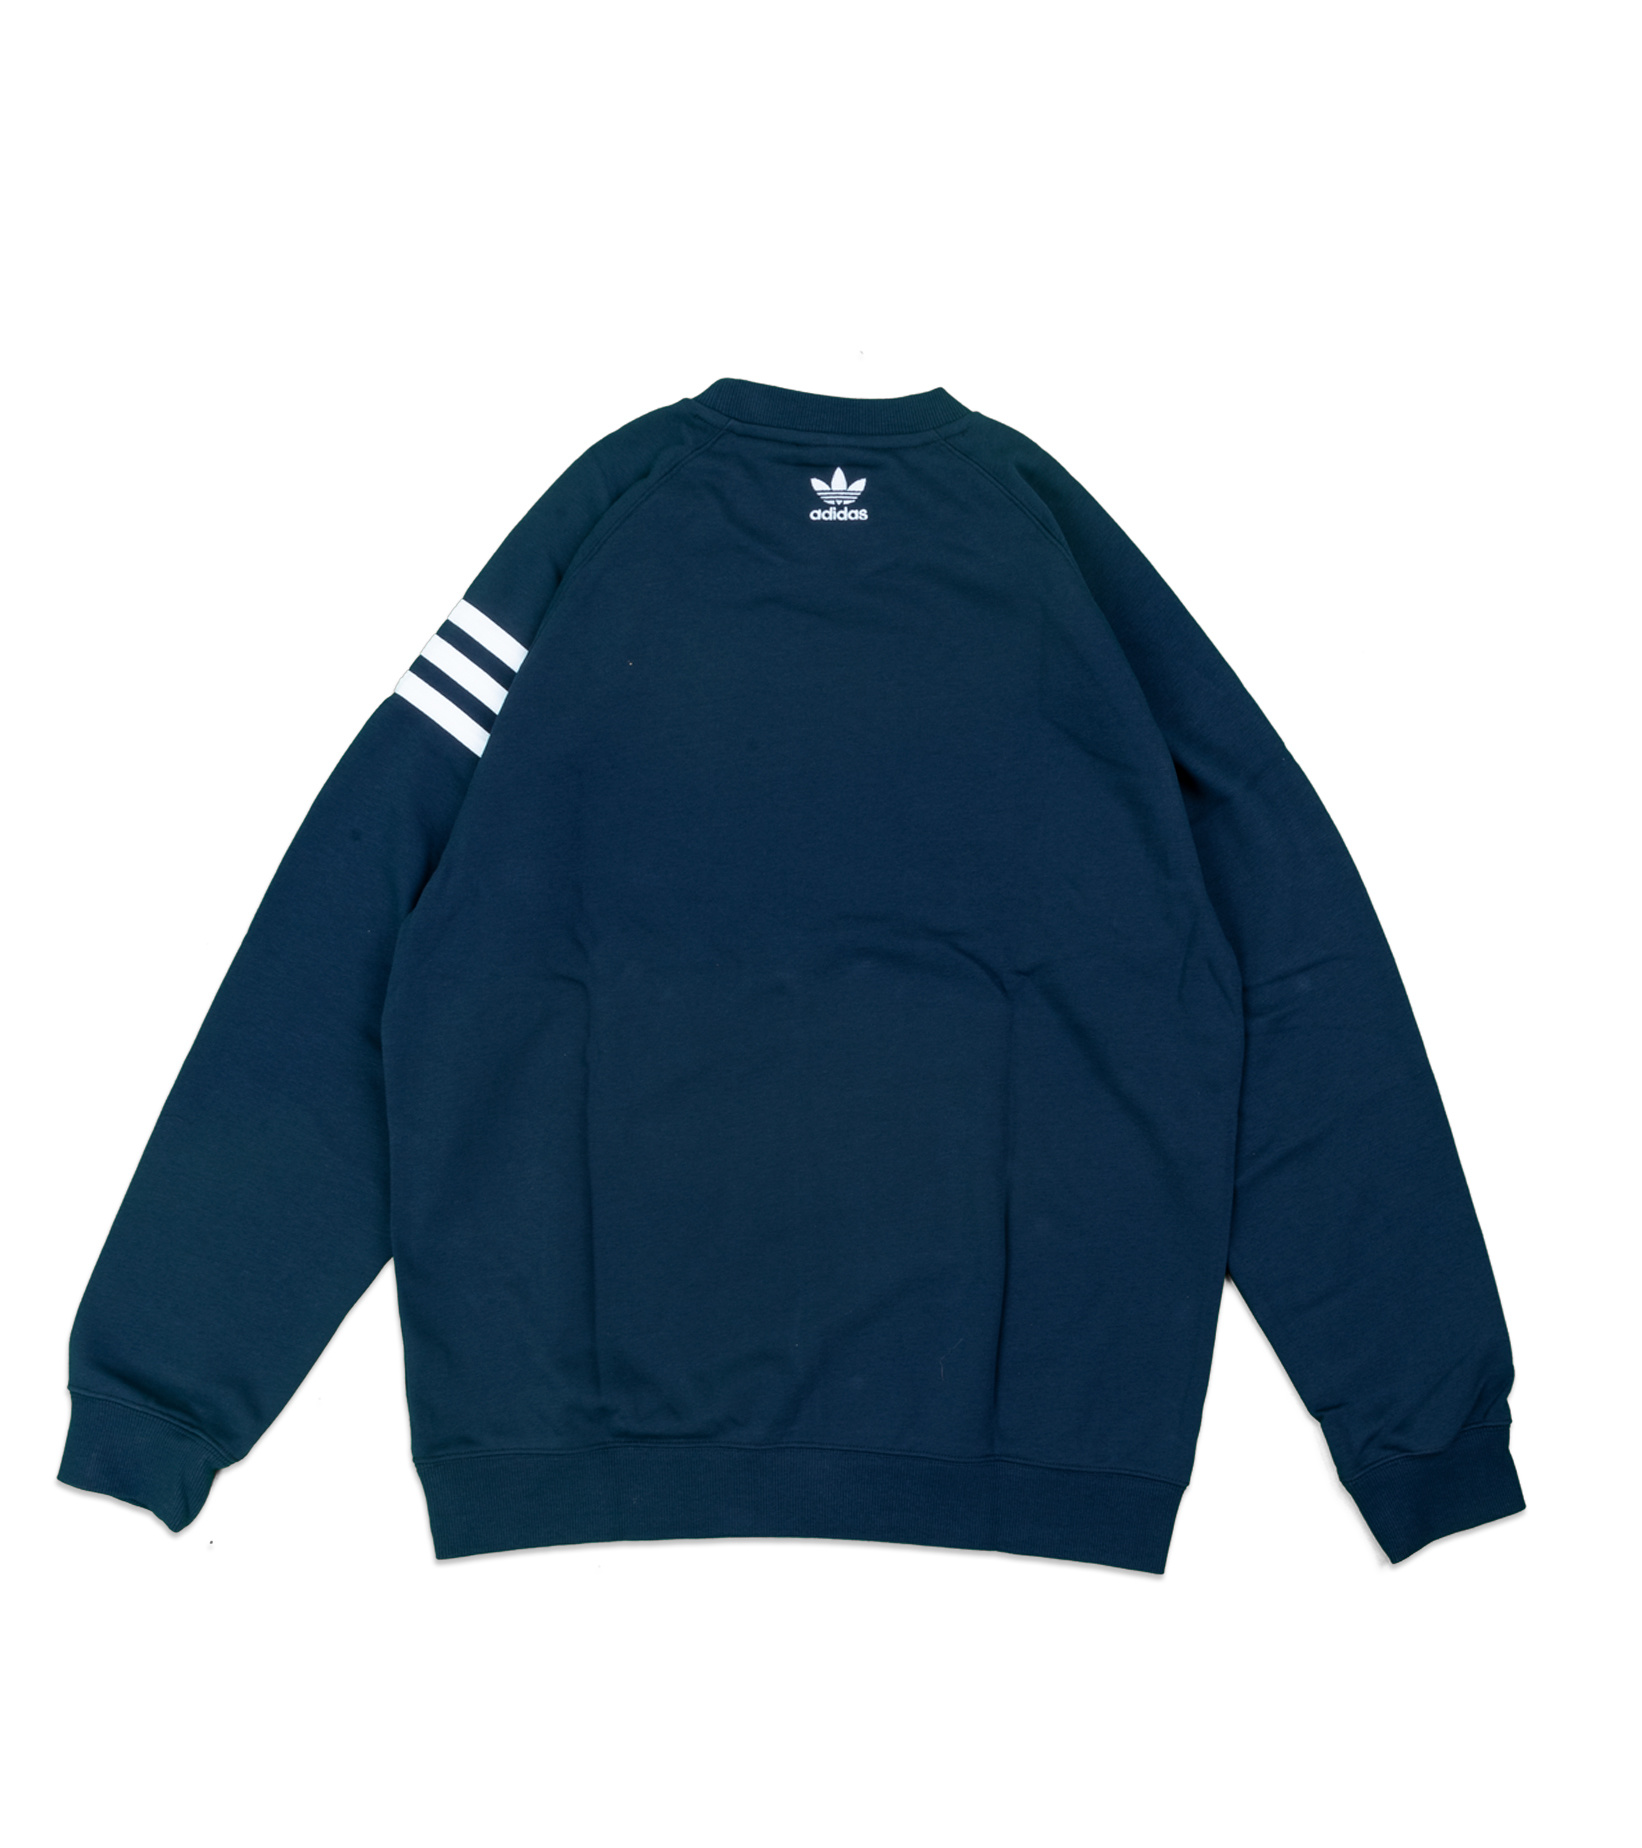 "Striped Shoulder Sweatshirt x Human Made ""Navy""-3"